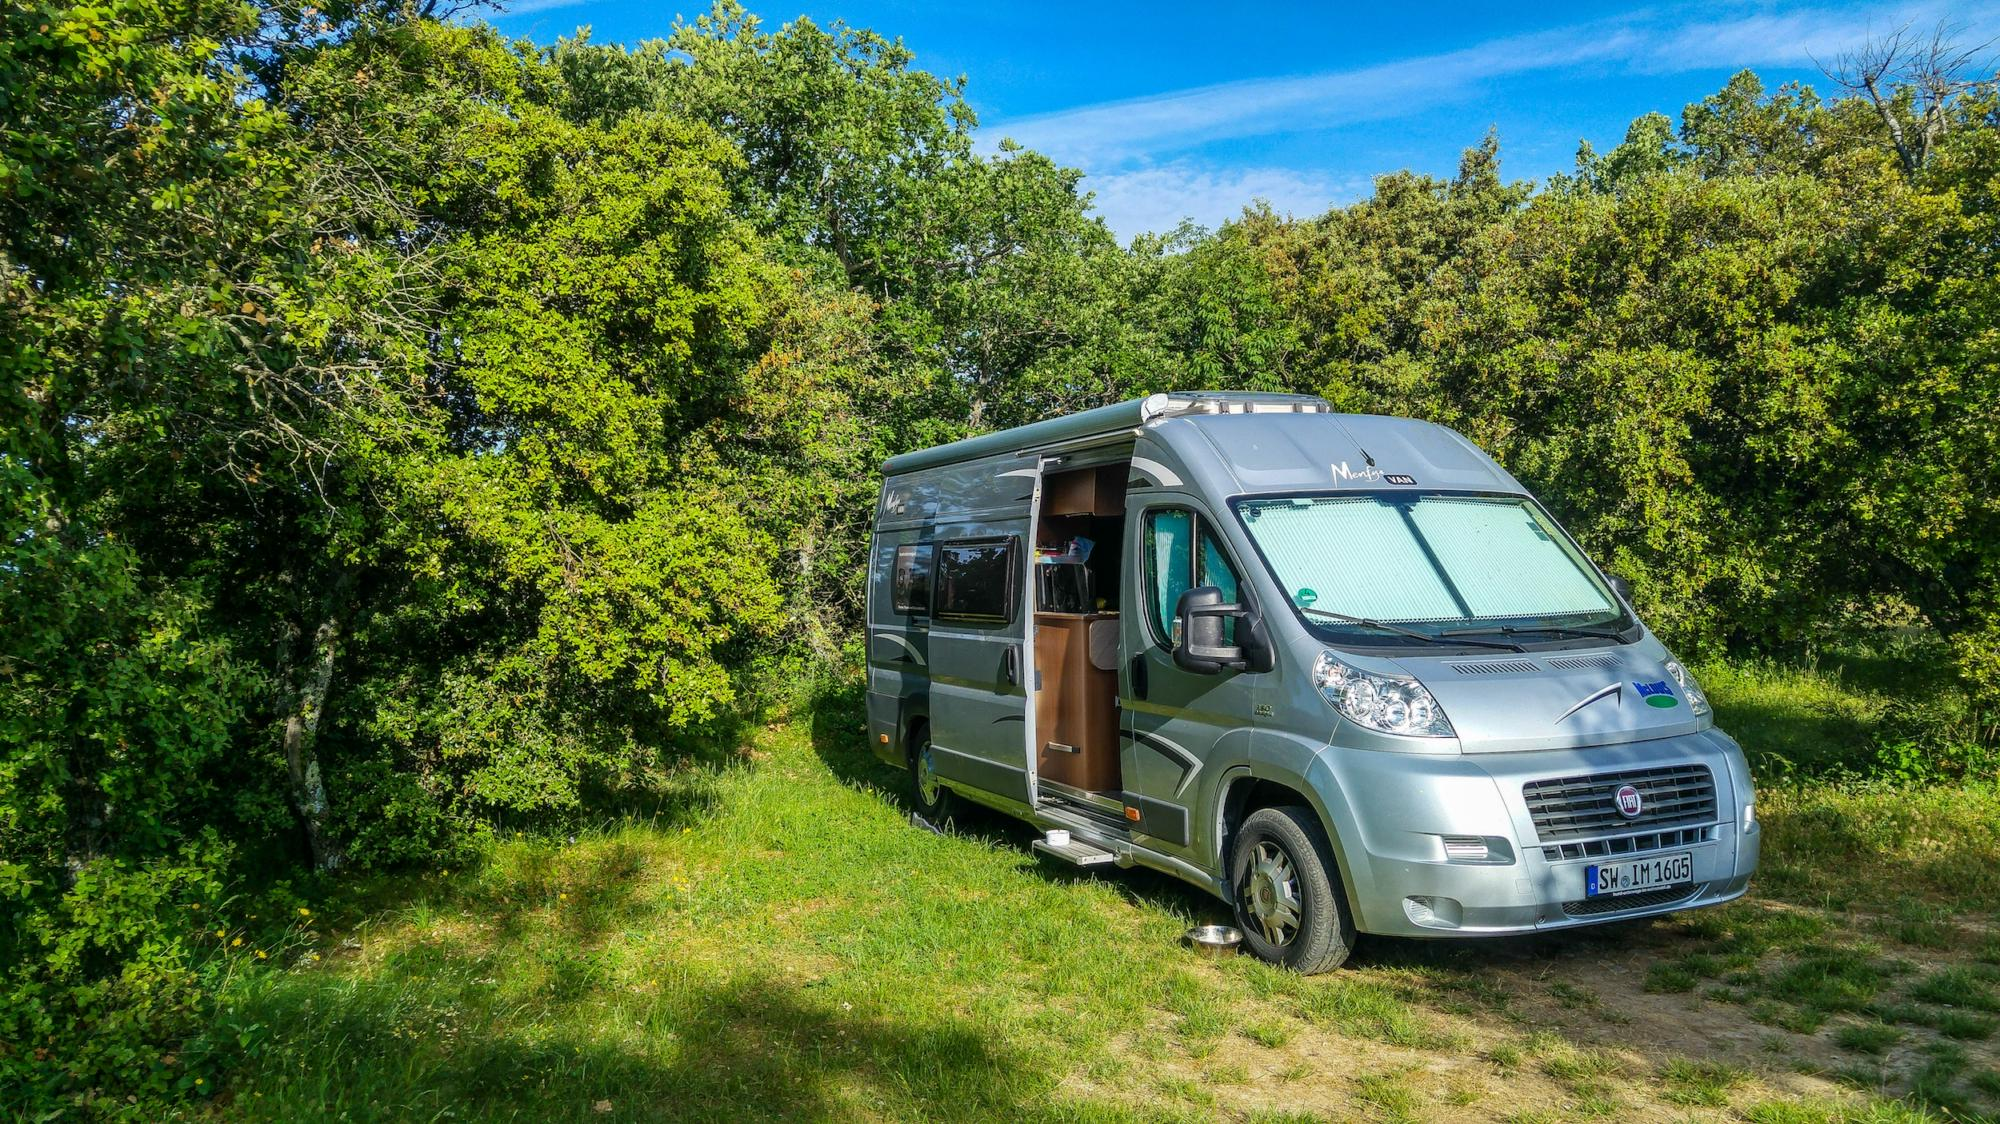 Campervan Hire Near Me – Find Motorhome Hire and Campervan Rental Nearby